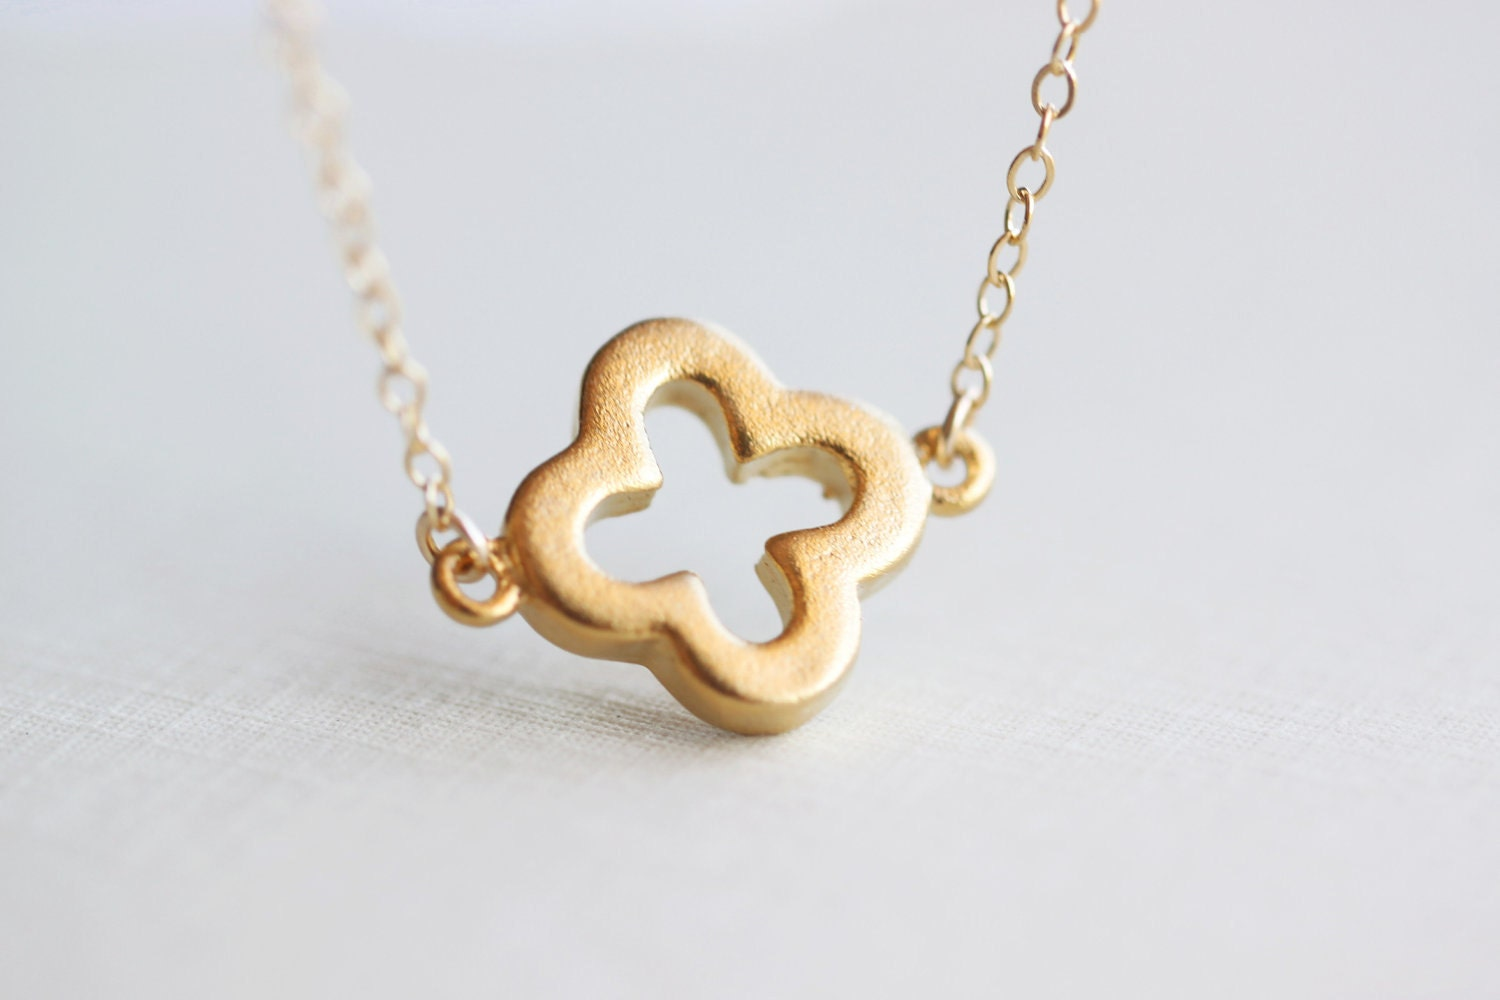 Gold Clover Necklace Four Leaf Clover Floating On 14k Gold